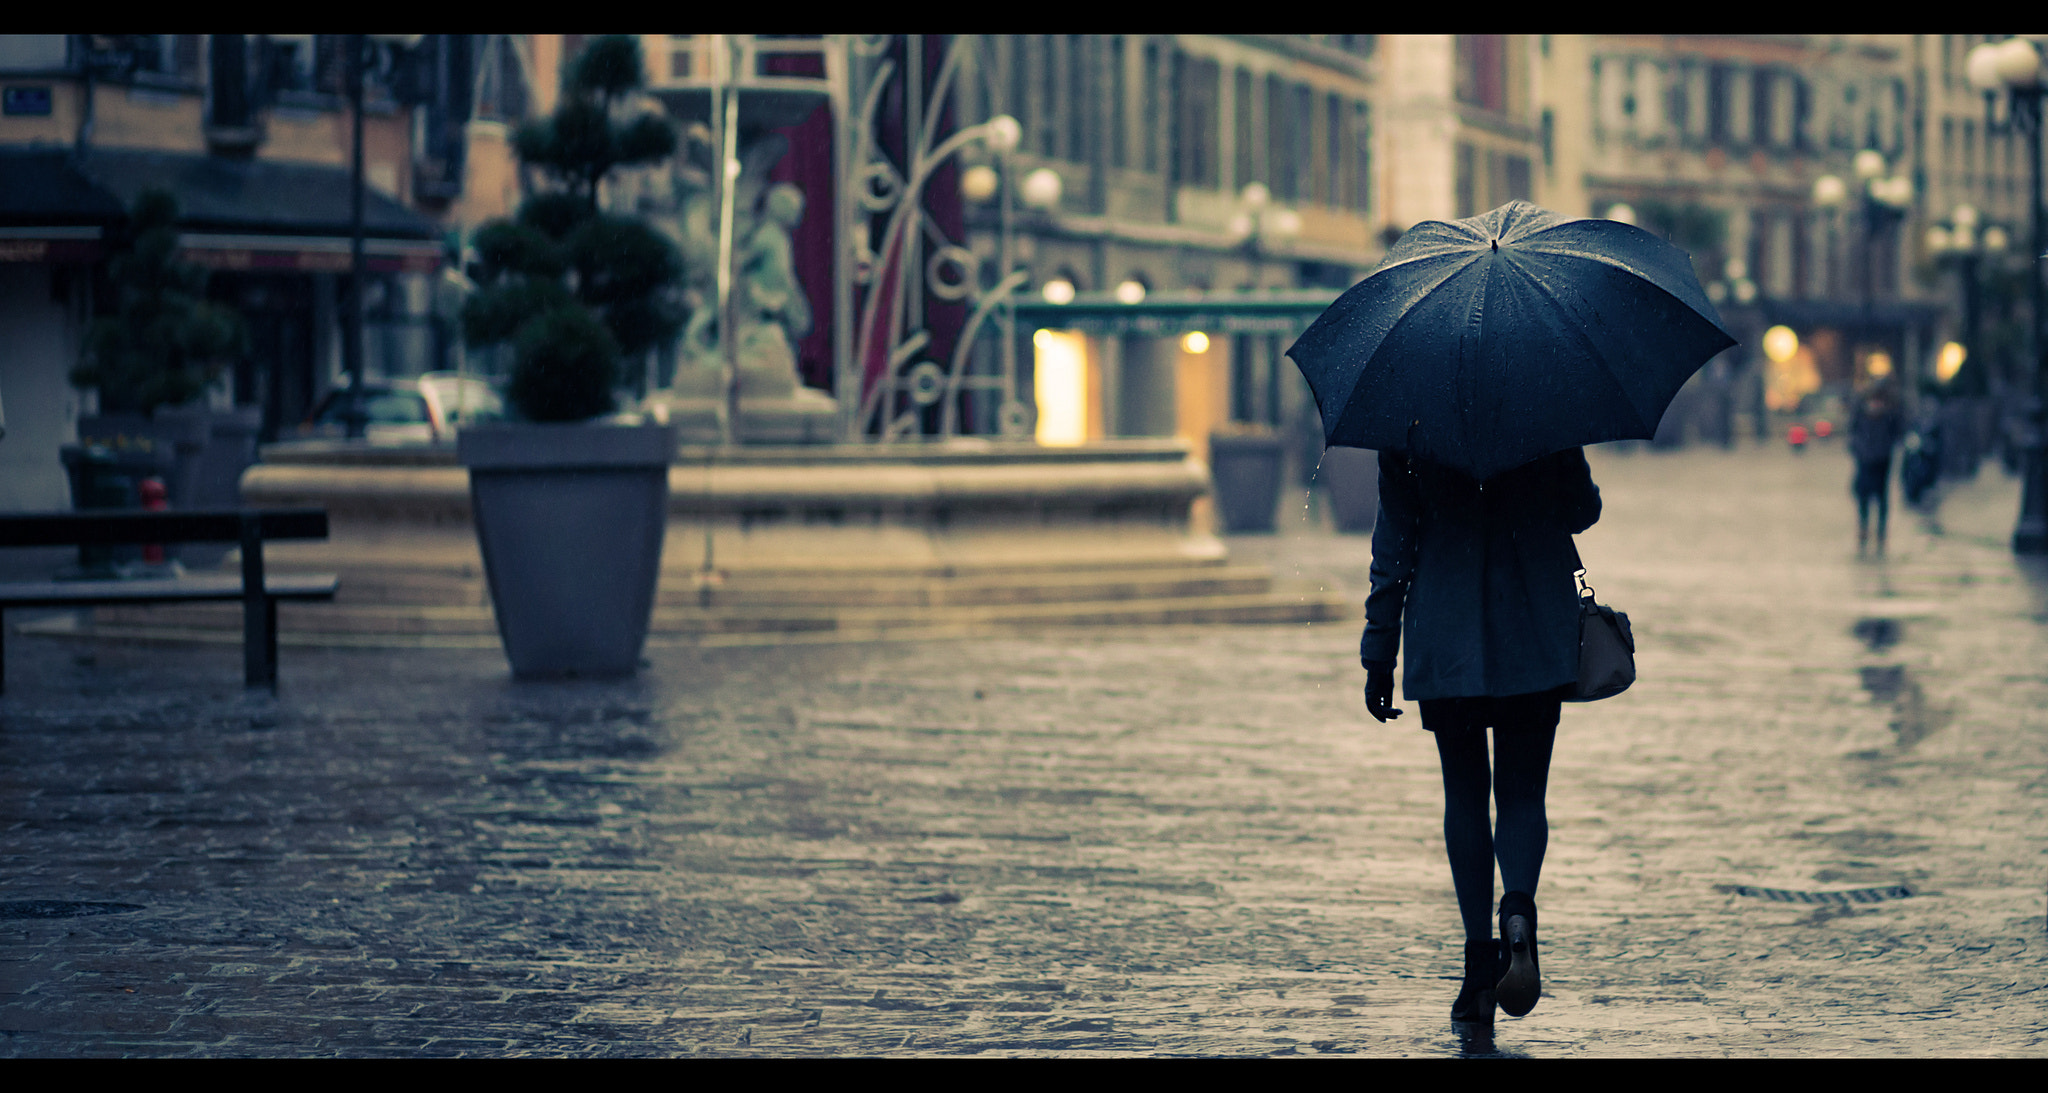 Photograph her umbrella by Eneade   on 500px